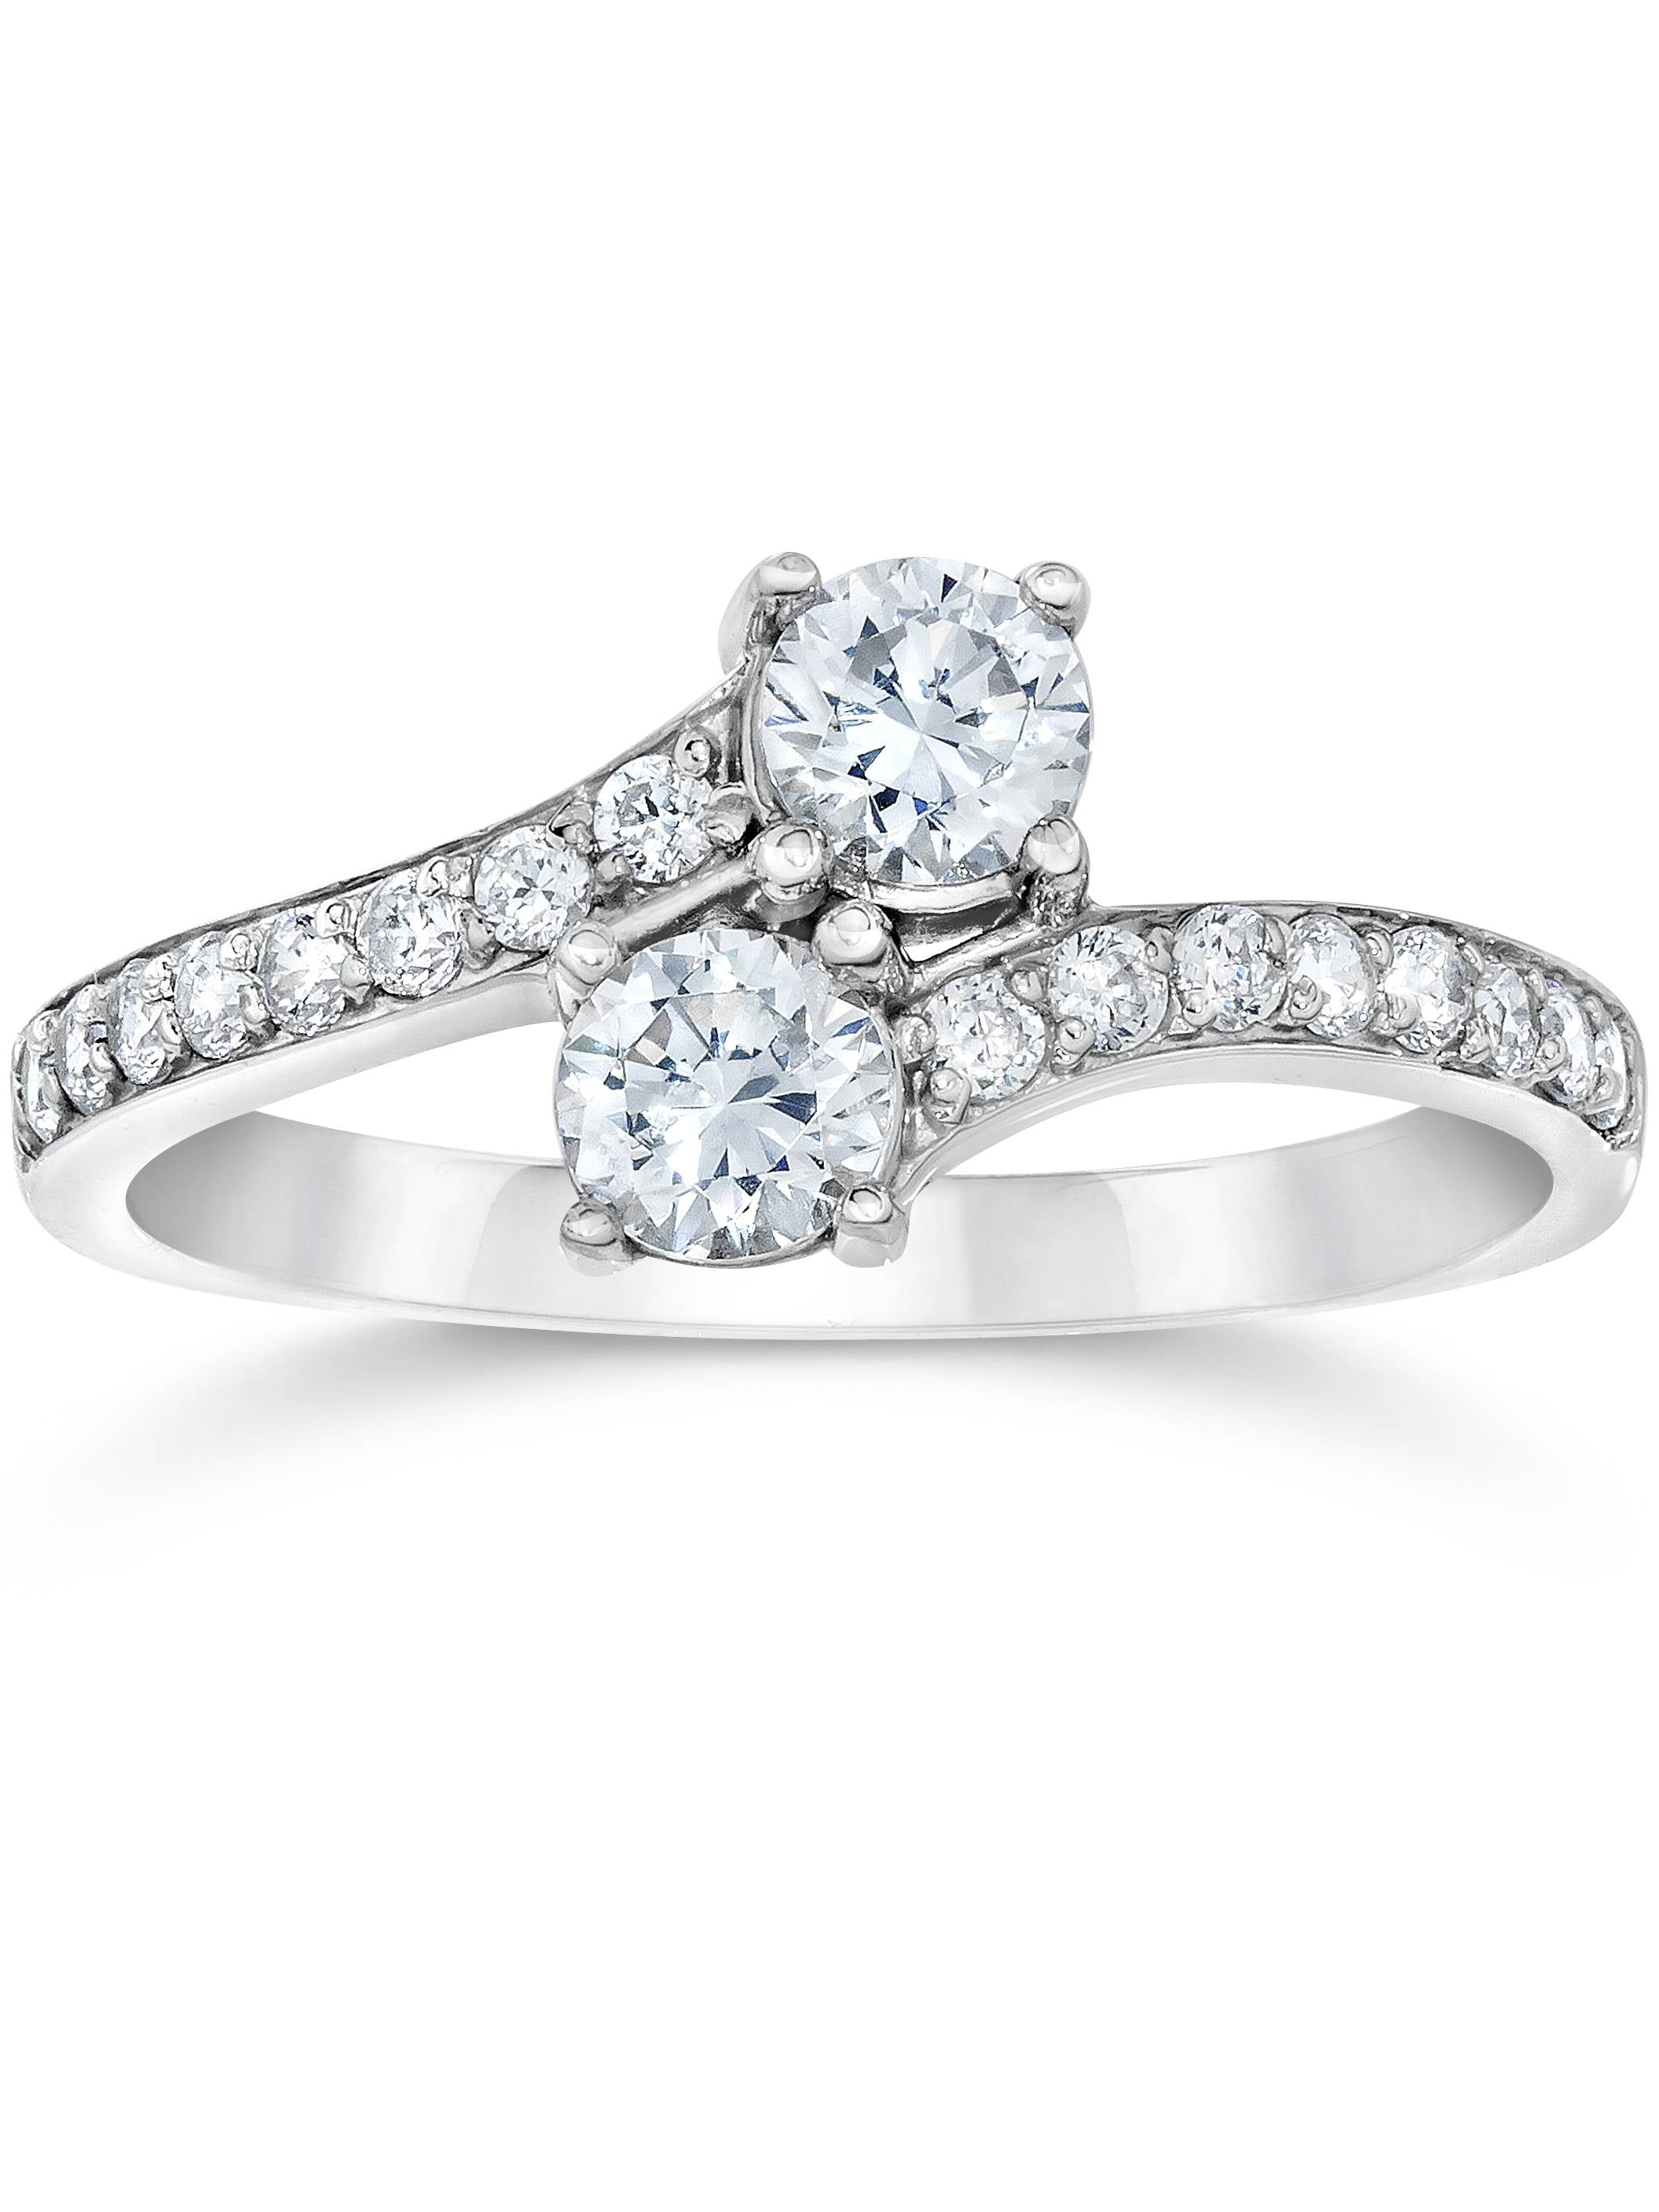 ea5f454a07d85d Pompeii3 - SI1/G Forever Us Two Stone Round Diamond 1.00 Ct Solitaire Ring  14k White Gold - Walmart.com